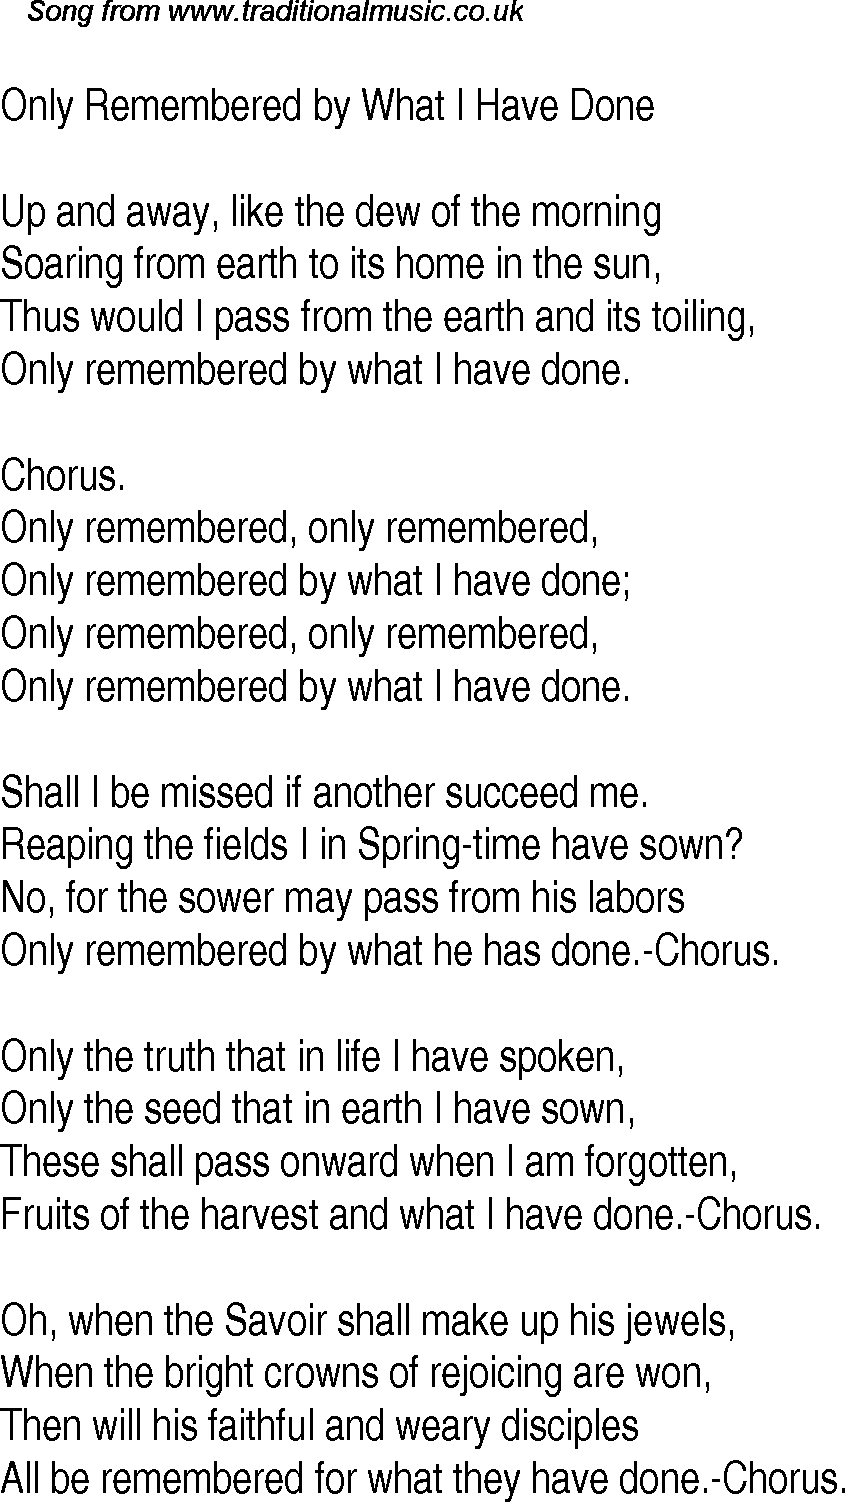 Only remembered for what we have done song — photo 1